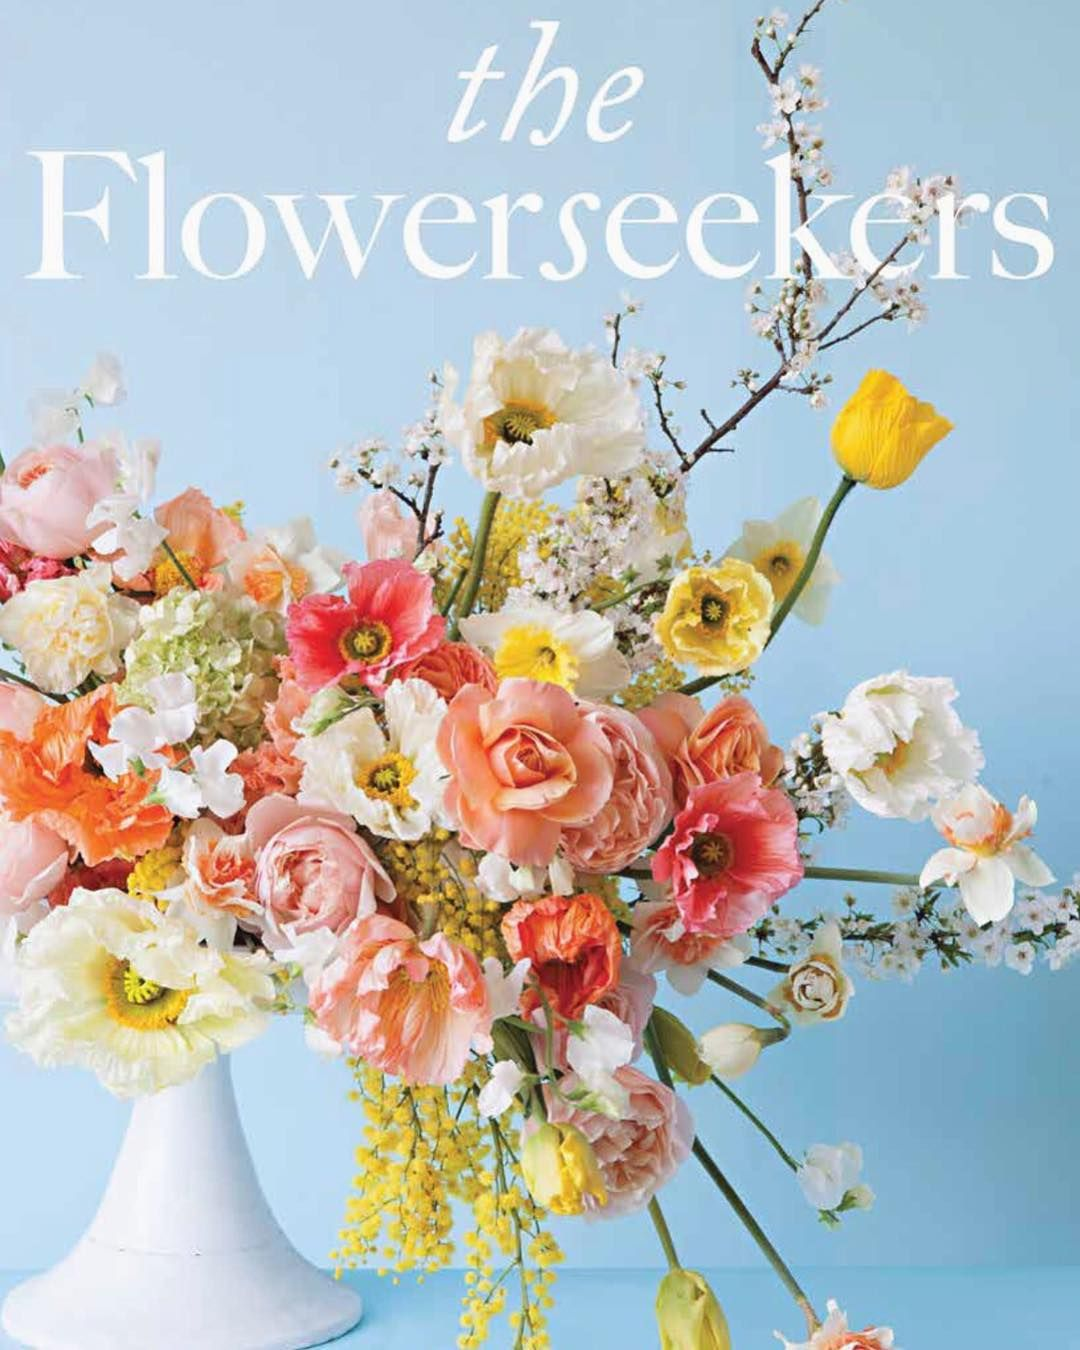 Pin by Erika Cober on Flowers + Style | Flowers, Spring